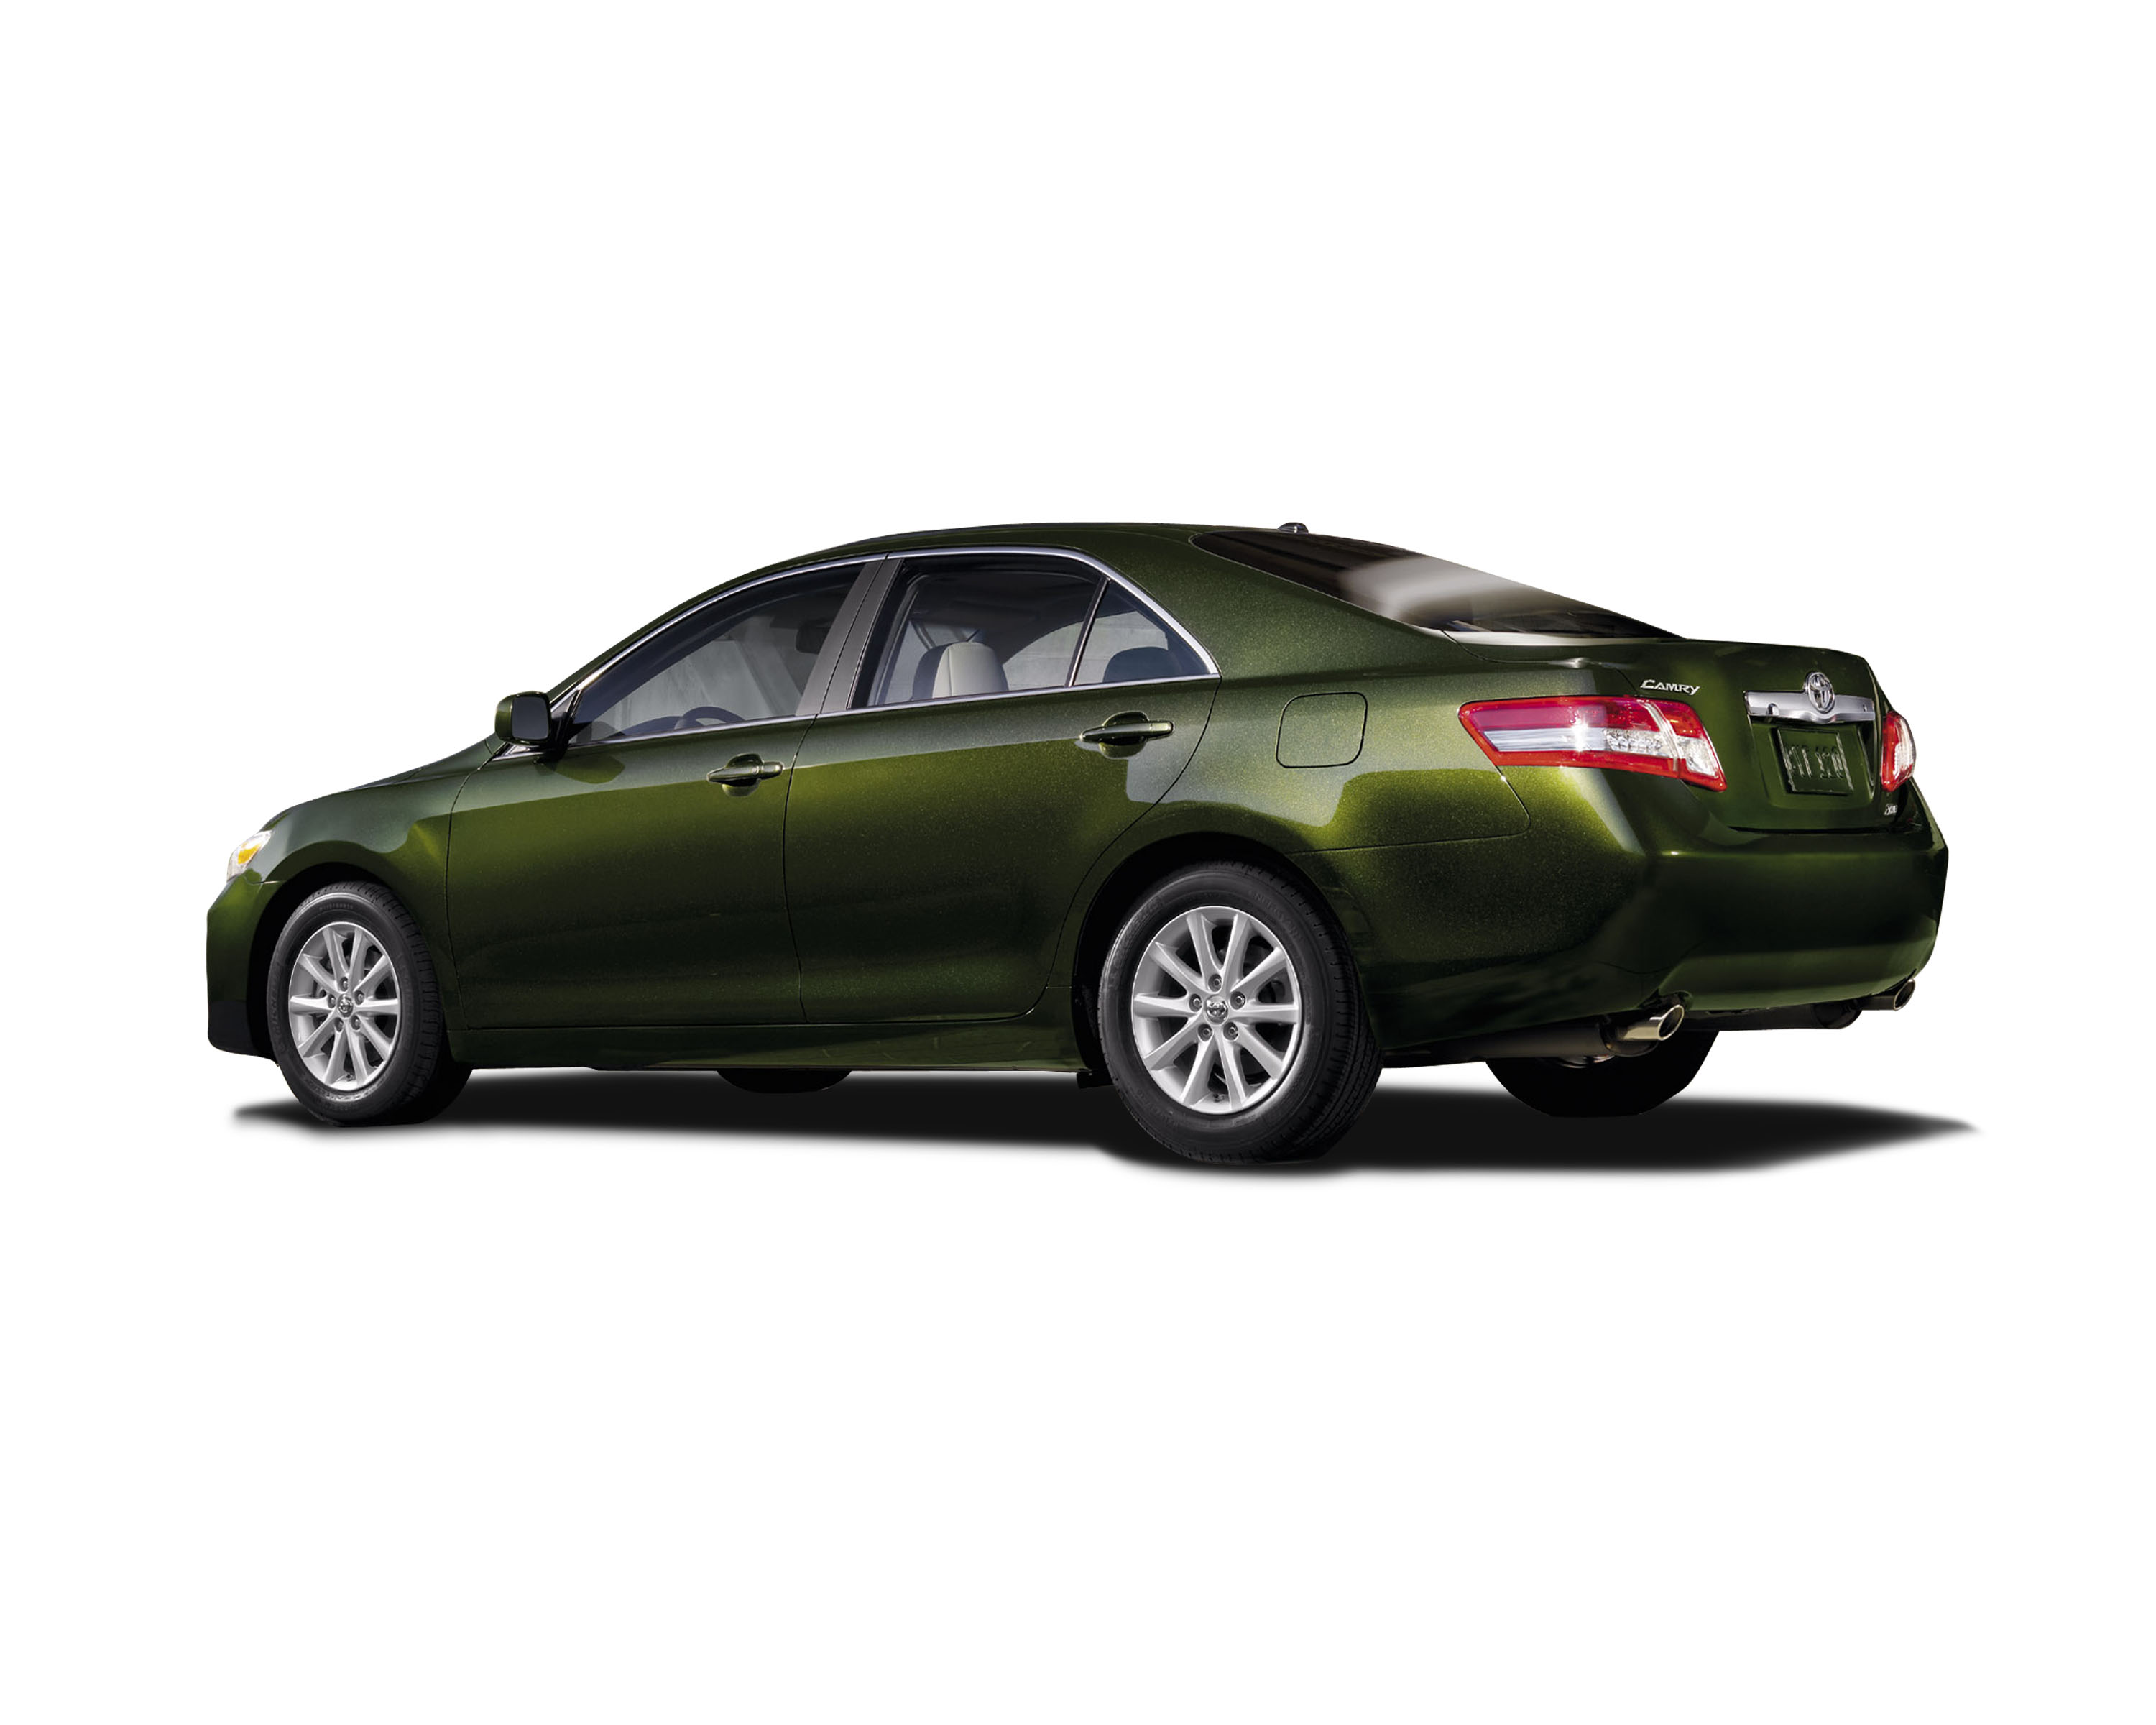 2010 toyota camry top speed rh topspeed com 2002 Toyota Camry 2014 Camry Manual